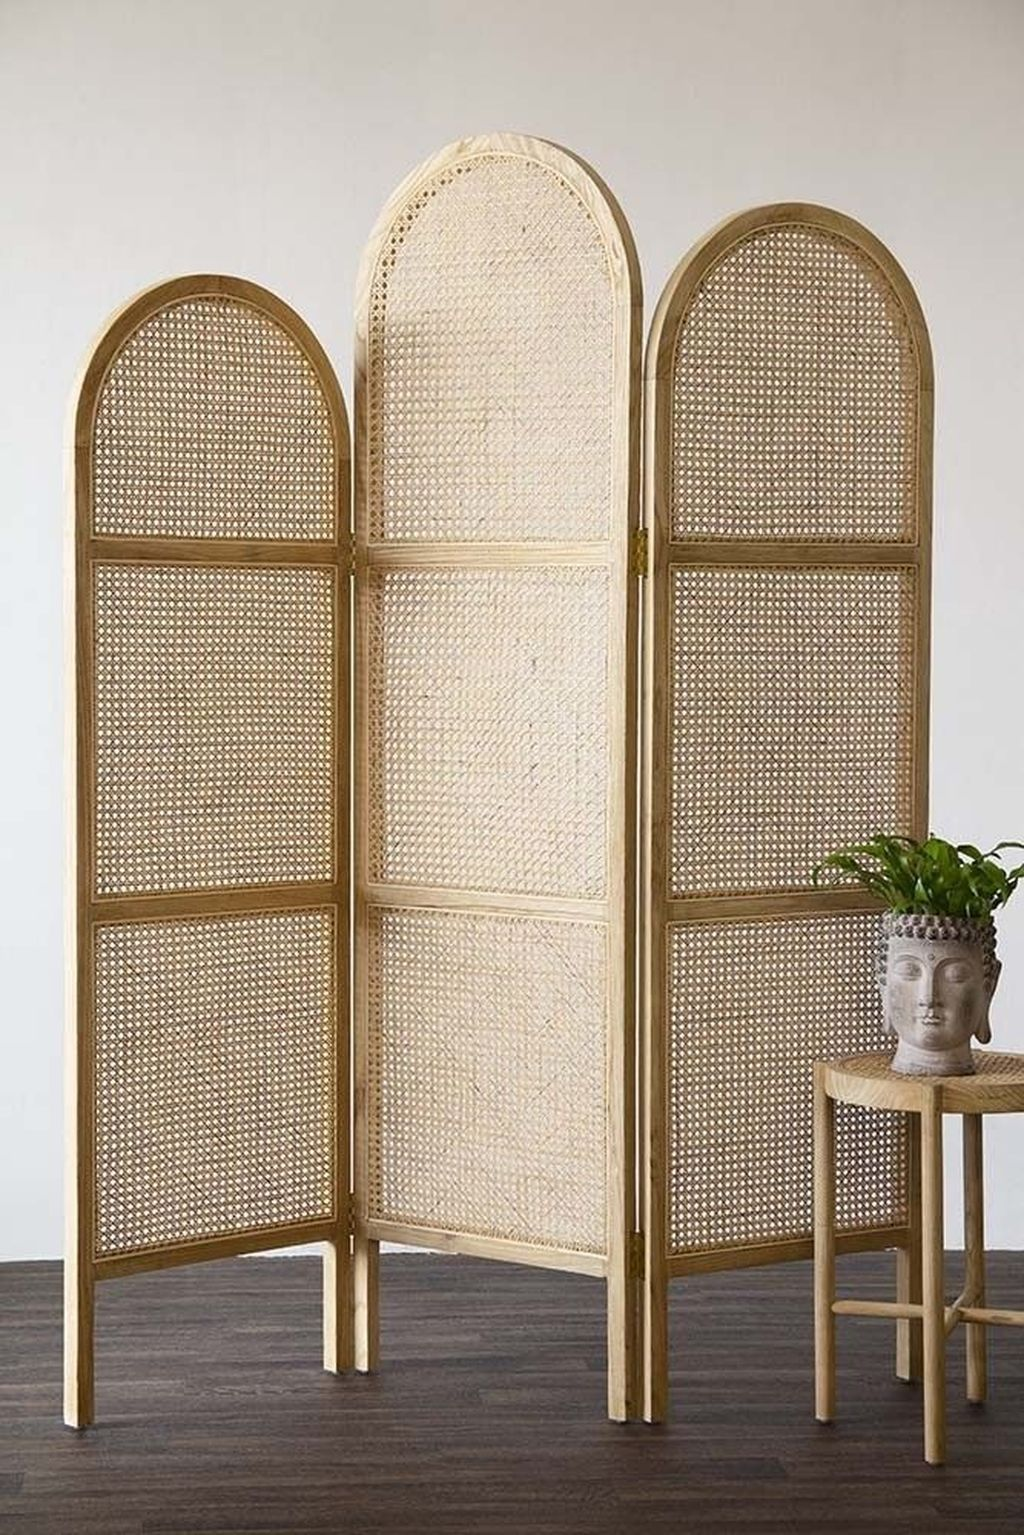 40 Awesome Diy Room Divider Ideas To Try Asap Wooden Room Dividers Room Divider Screen Divider Screen